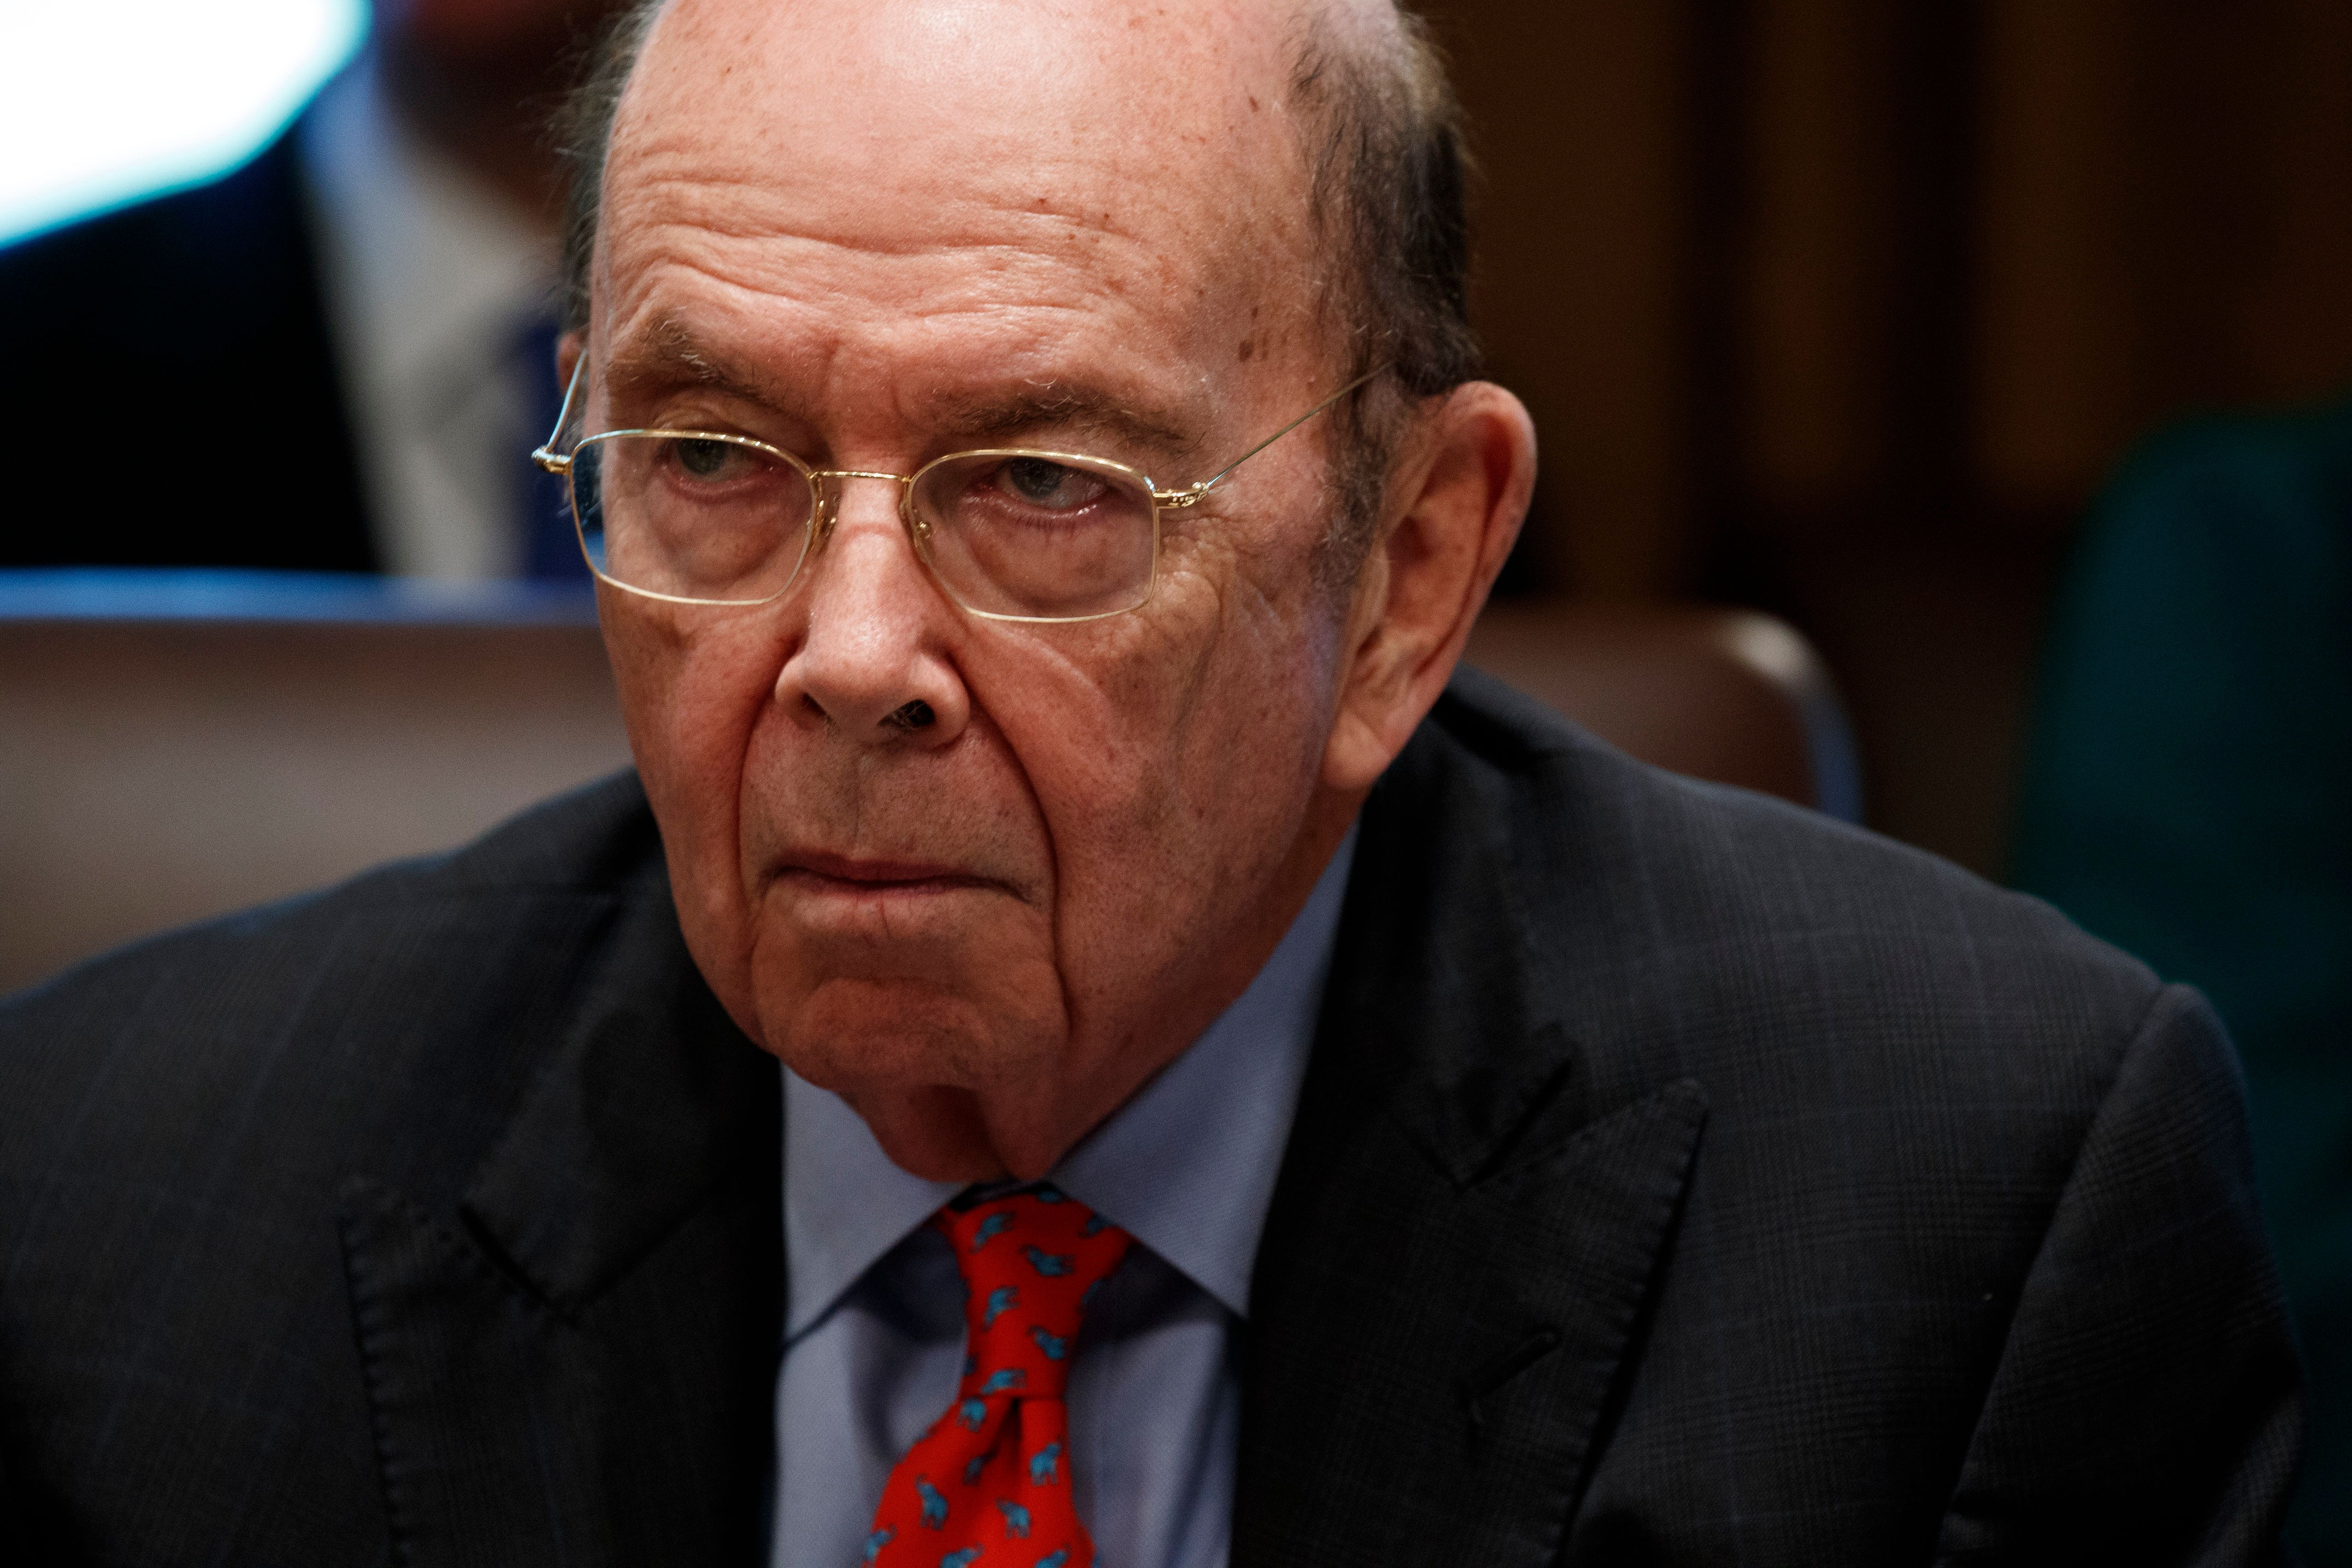 Commerce Secretary Wilbur Ross will soon be facing scrutiny over his misleading testimony about his decision to add a citizen